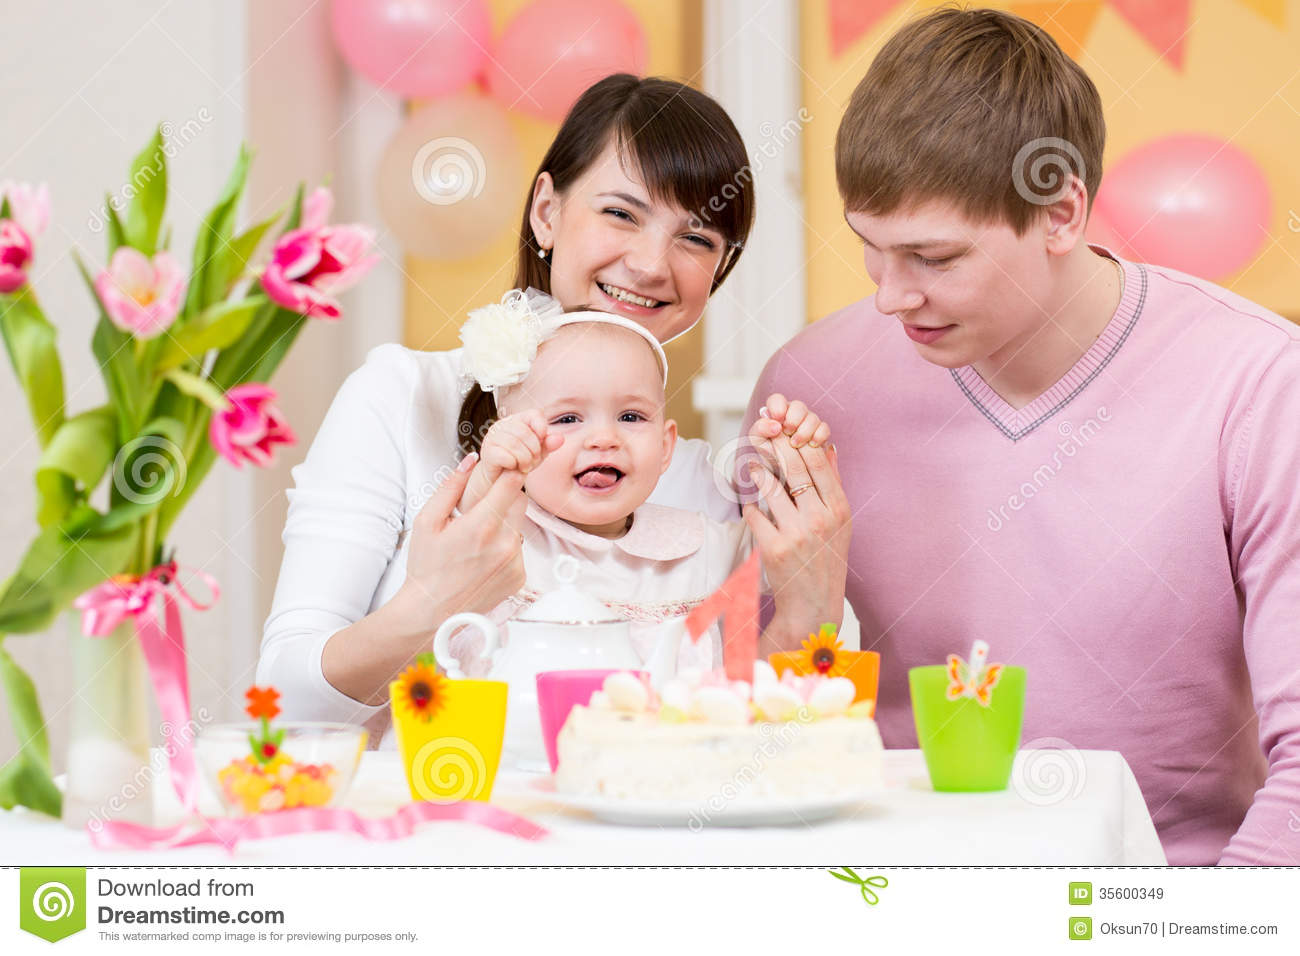 Family celebrating first birthday of baby girl